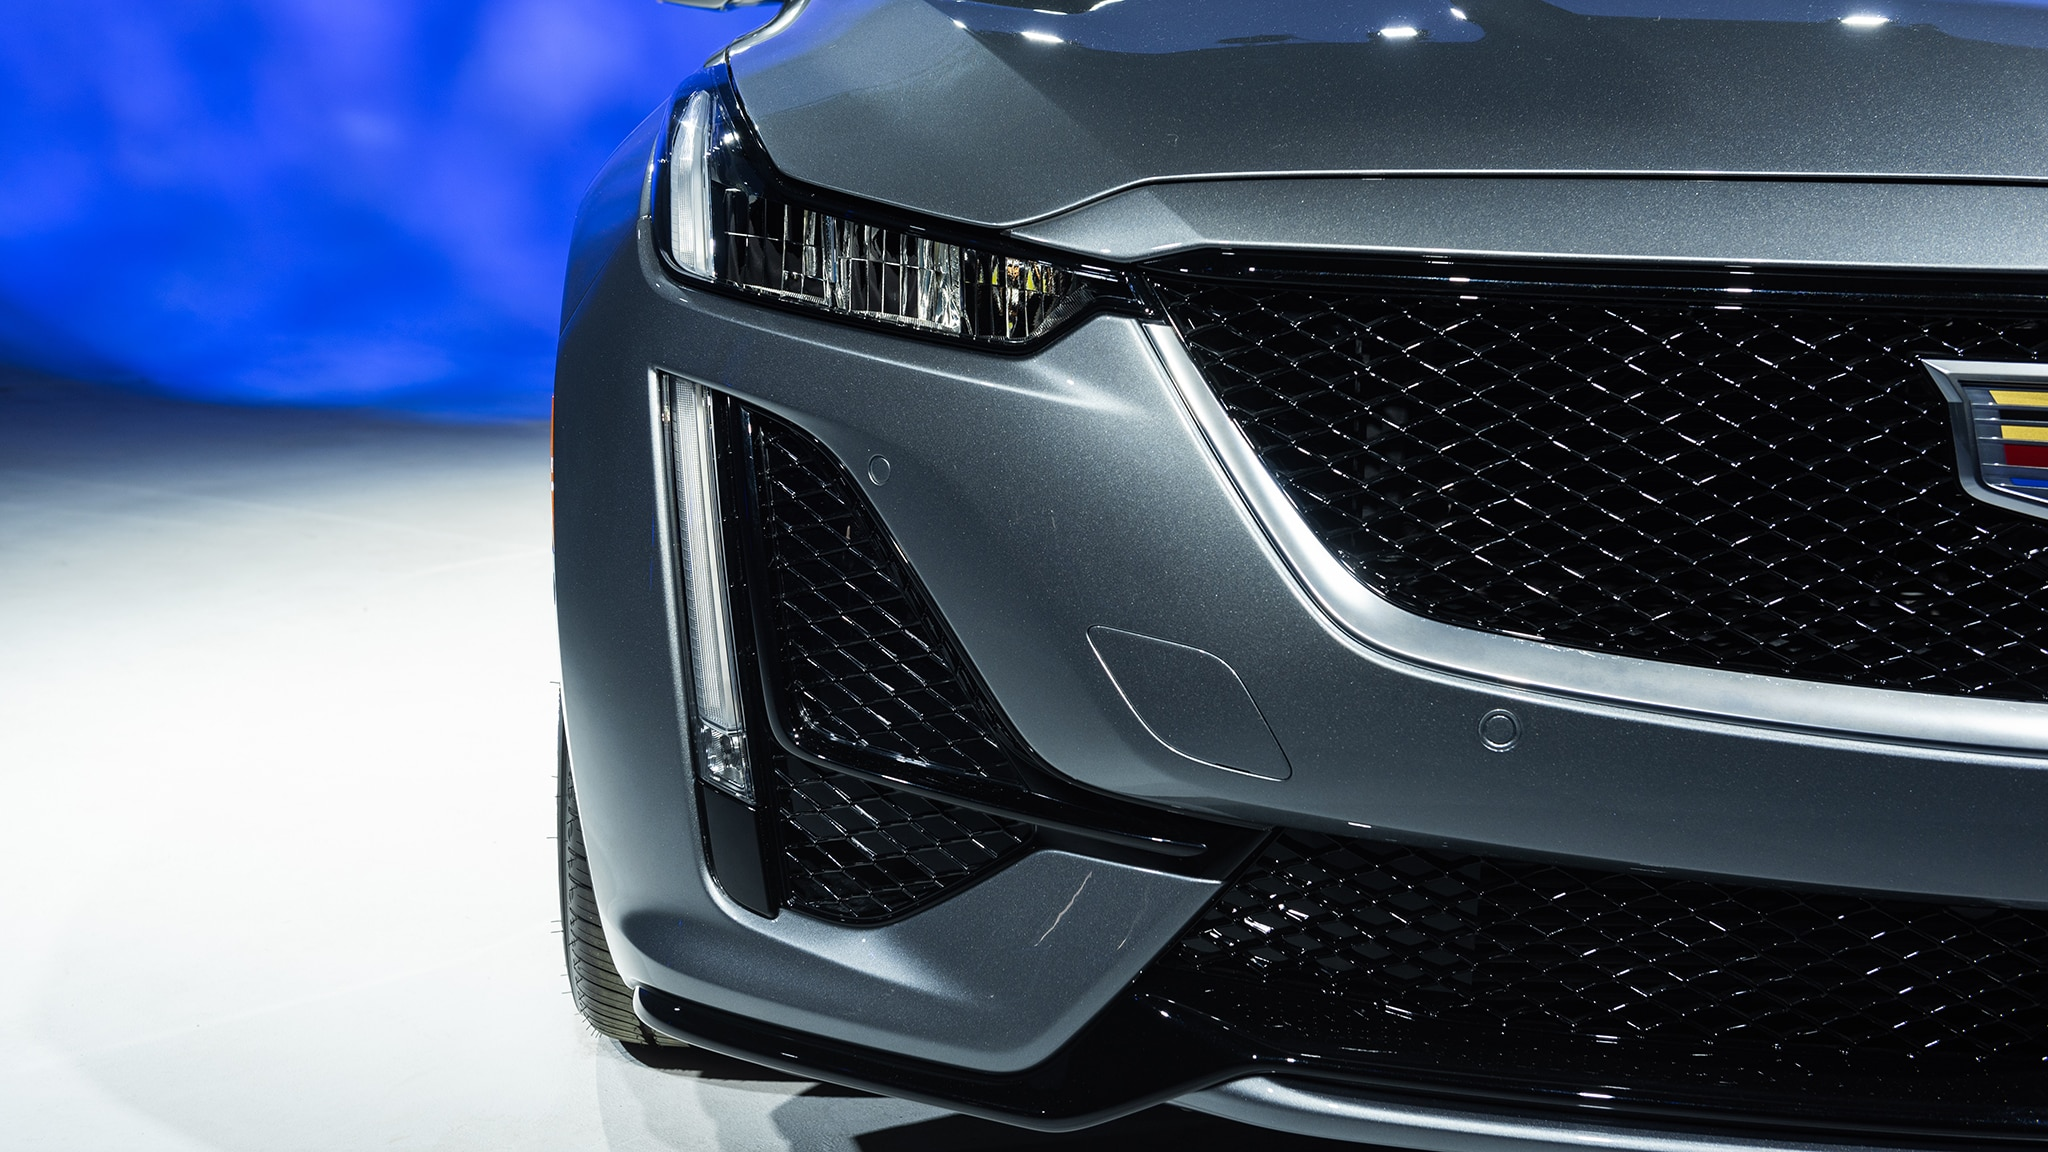 2020 Cadillac CT5 Official Photos and Info: It's a Huge Step Forward | Automobile Magazine